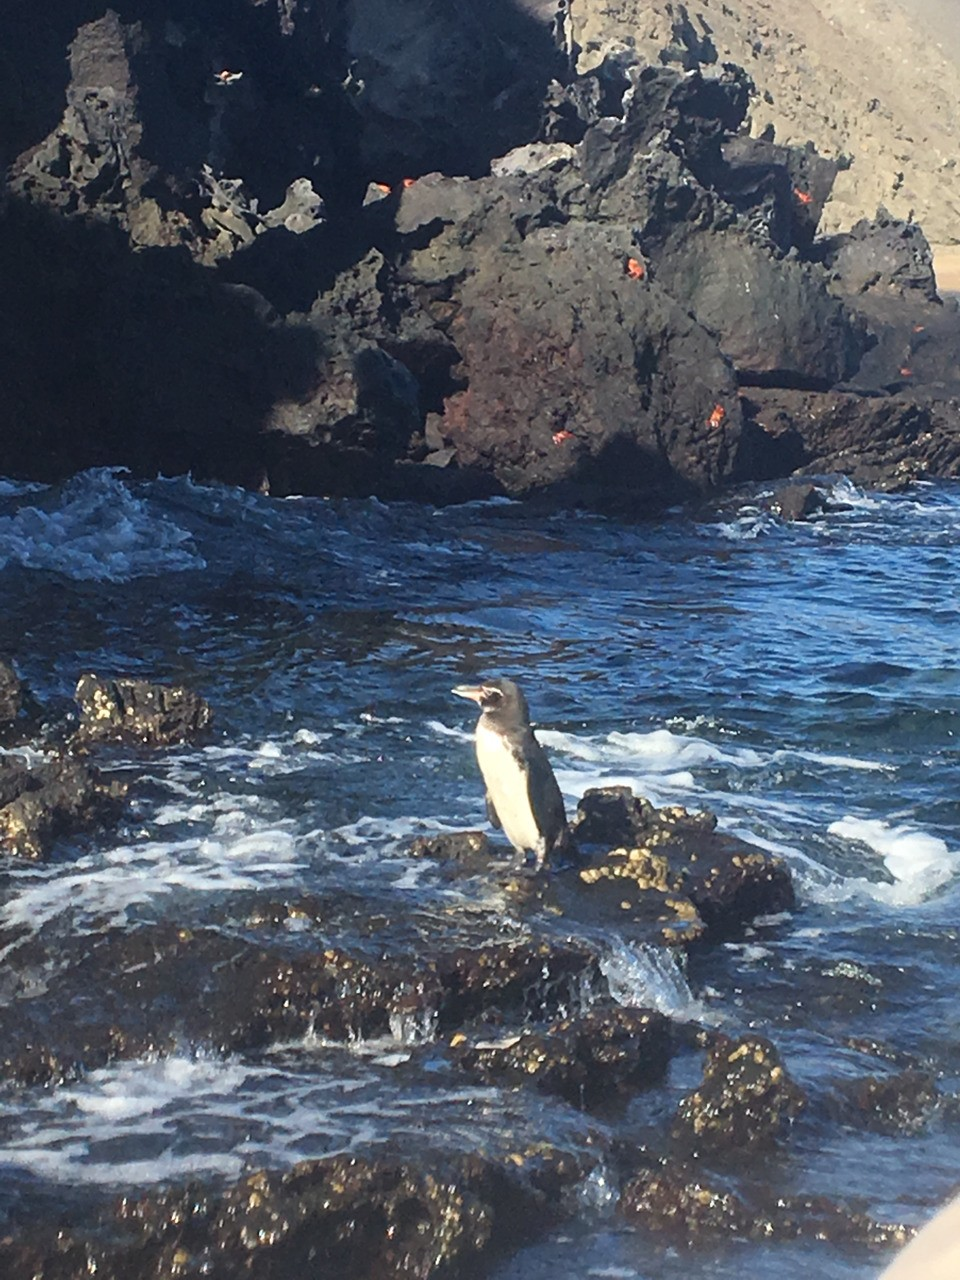 And our first Galapagos Penguin sighting! First Zodiac outing is a hit!